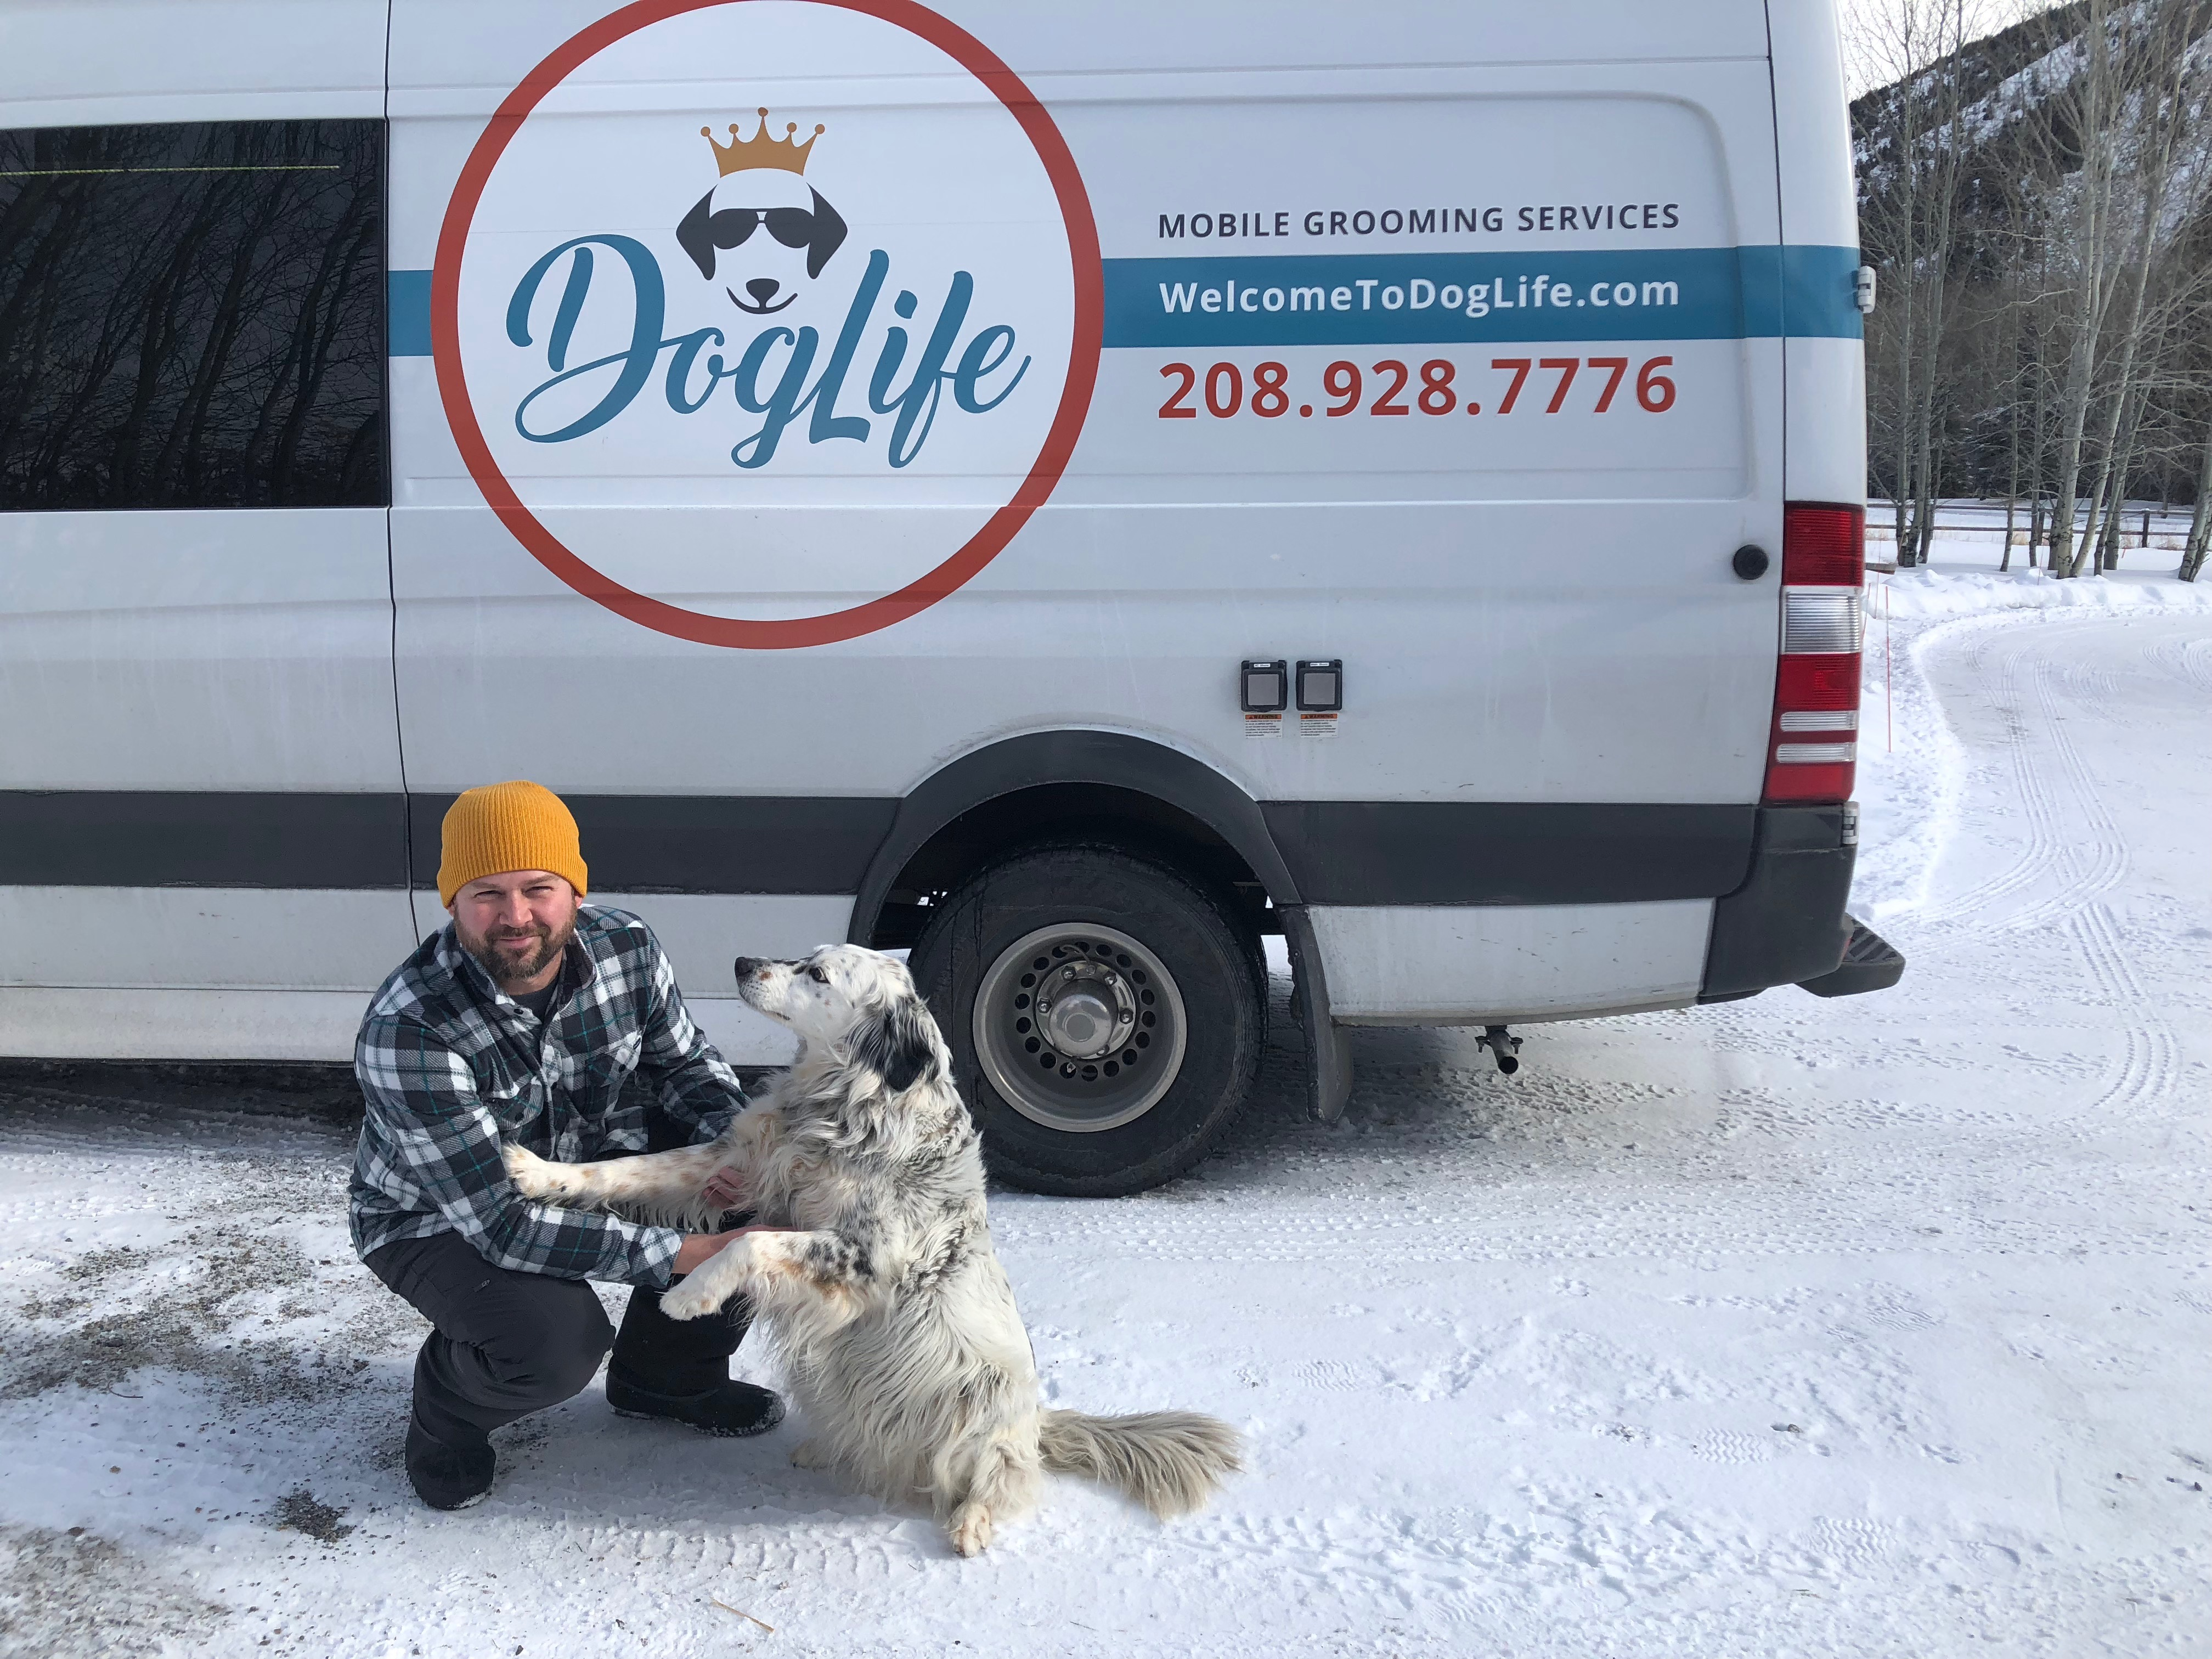 There's a New Business in Town | Welcome to Dog Life